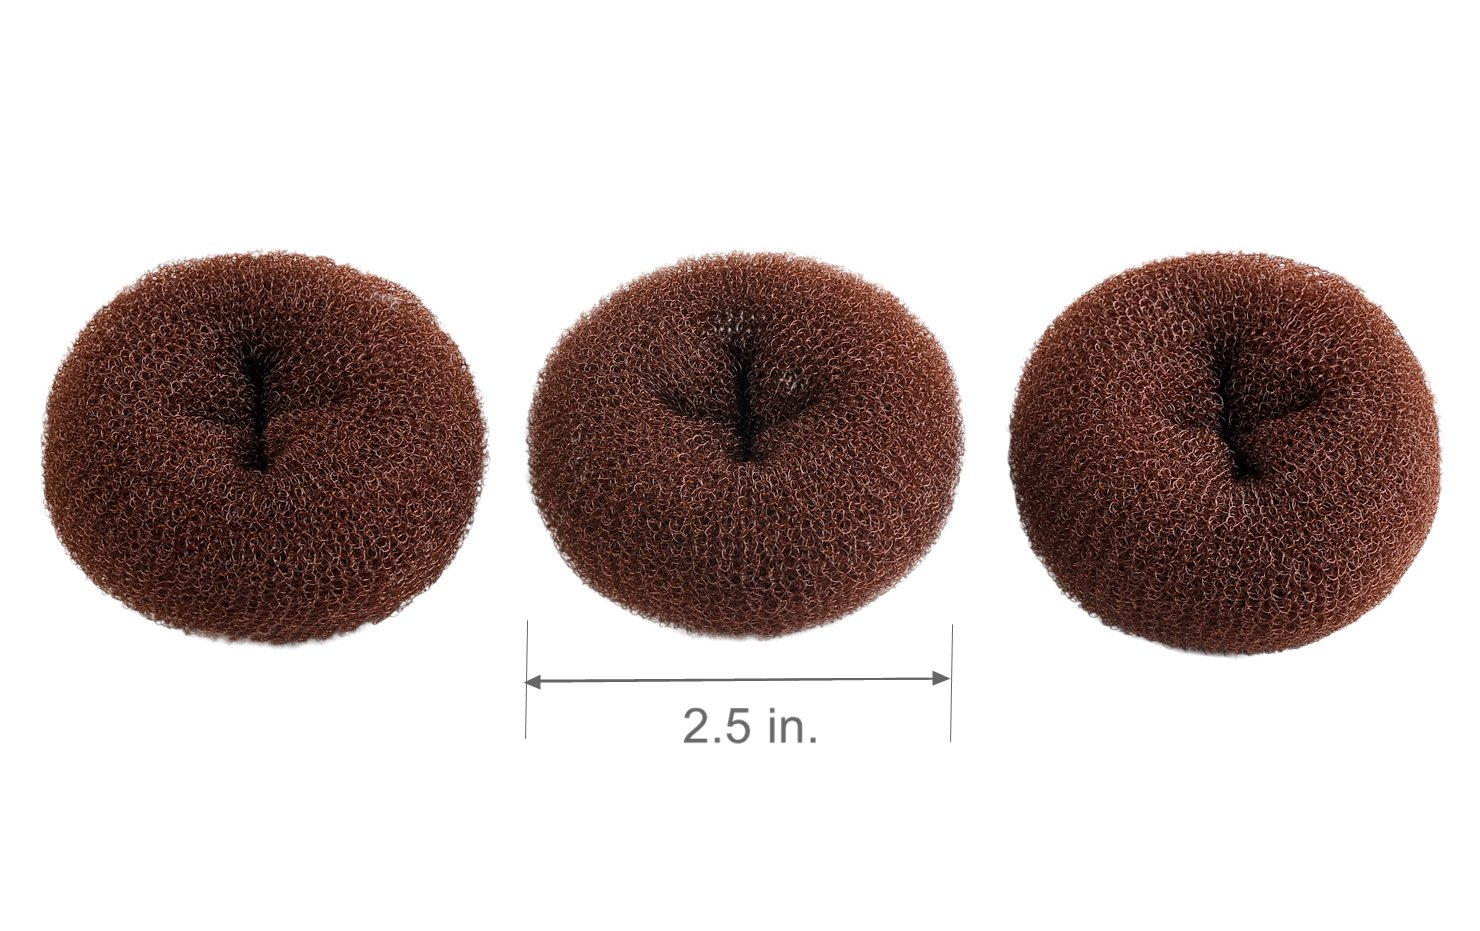 ClothoBeauty 3 pieces Extra small Size Kids/Children Hair Bun Donut Maker, Ring Style Bun, Chignon Donut Buns Doughnut Shaper Hair Bun maker (2.5 in.) (Blonde) ltd